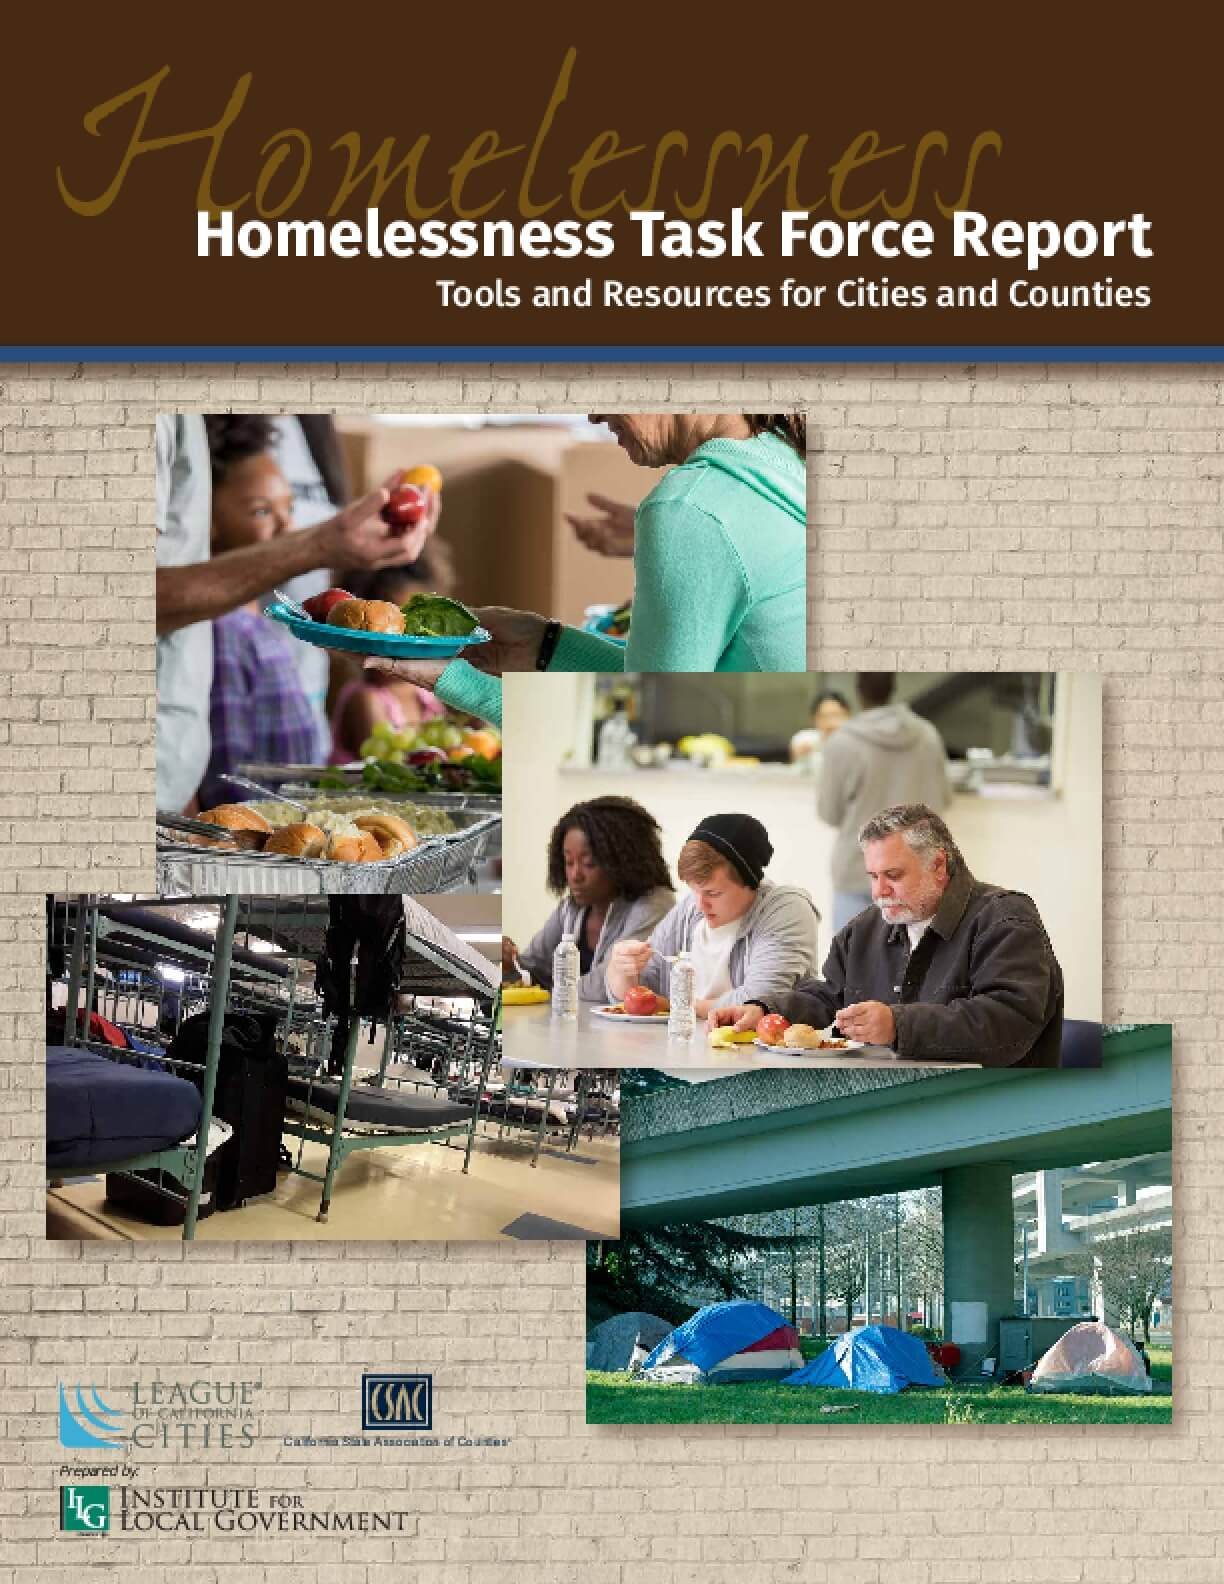 Homelessness Task Force Report: Tools and Resources for Cities and Counties